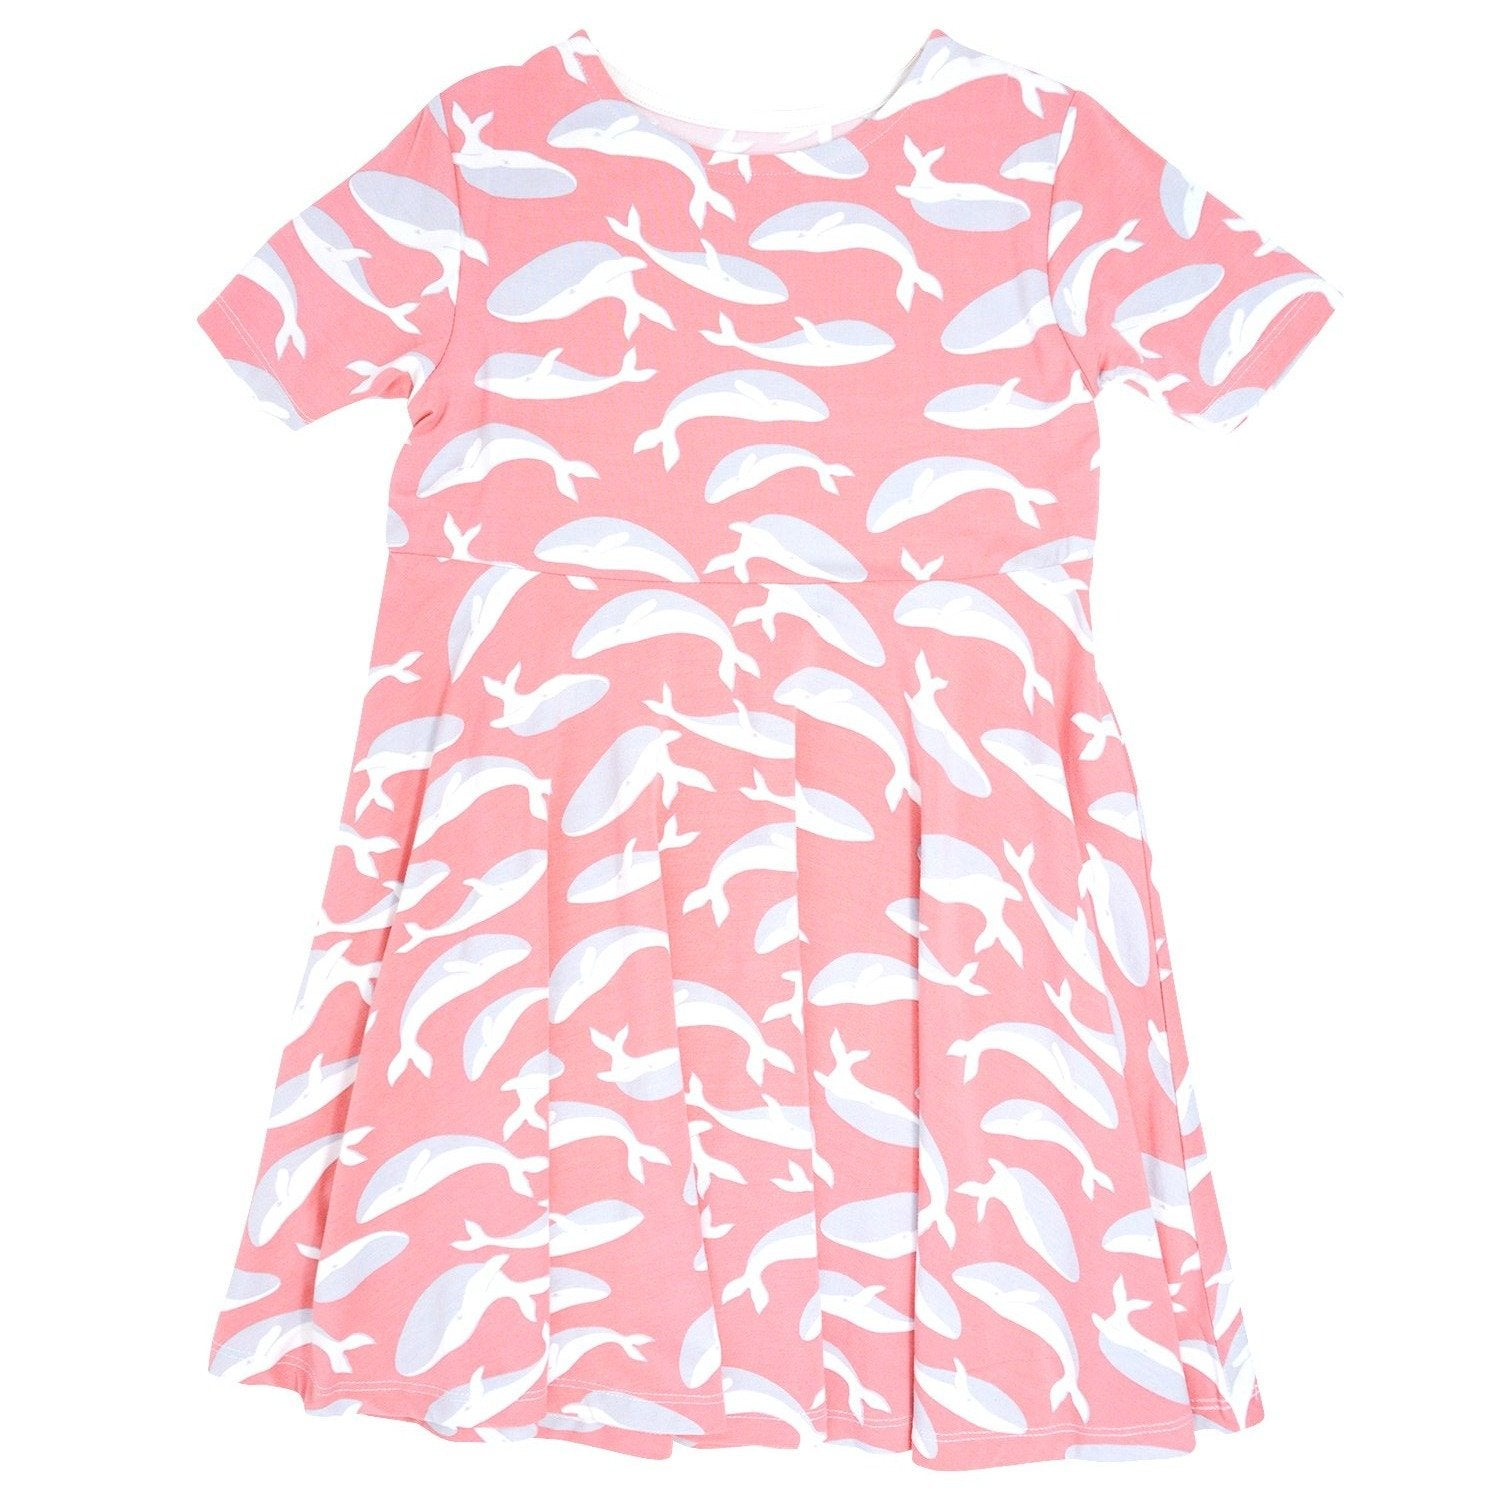 Swirly Girl Dress w/Cap Sleeve - Pink Whale Dresses sweetbambooclothing